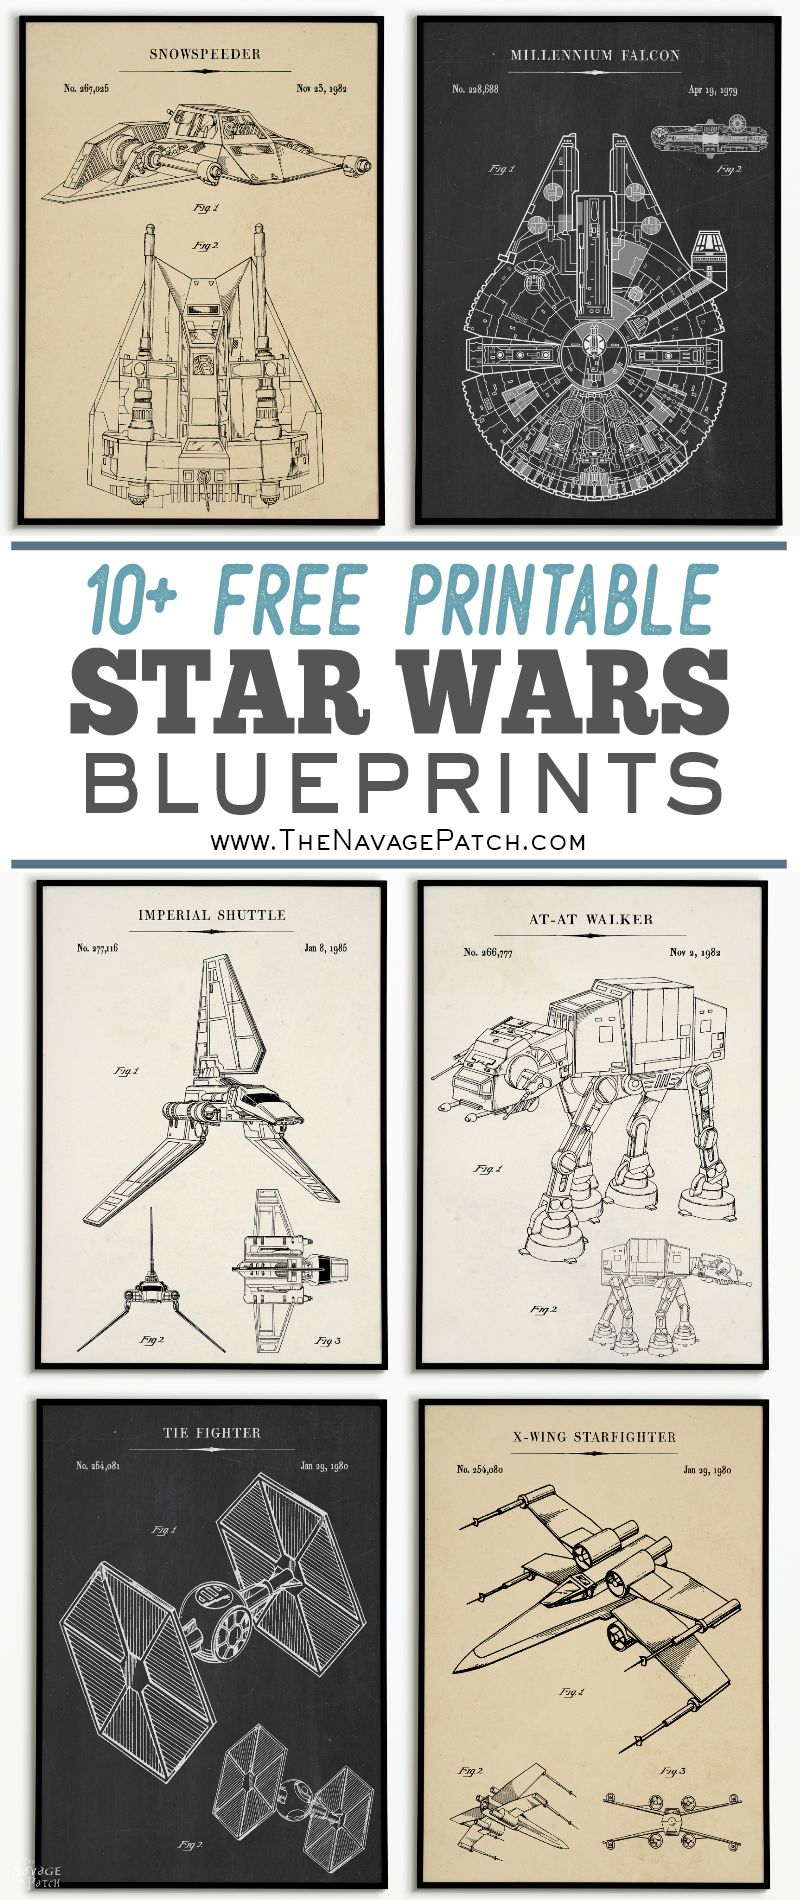 image relating to Printable Star Wars Images known as Free of charge Printable Star Wars Blueprints - The Navage Patch